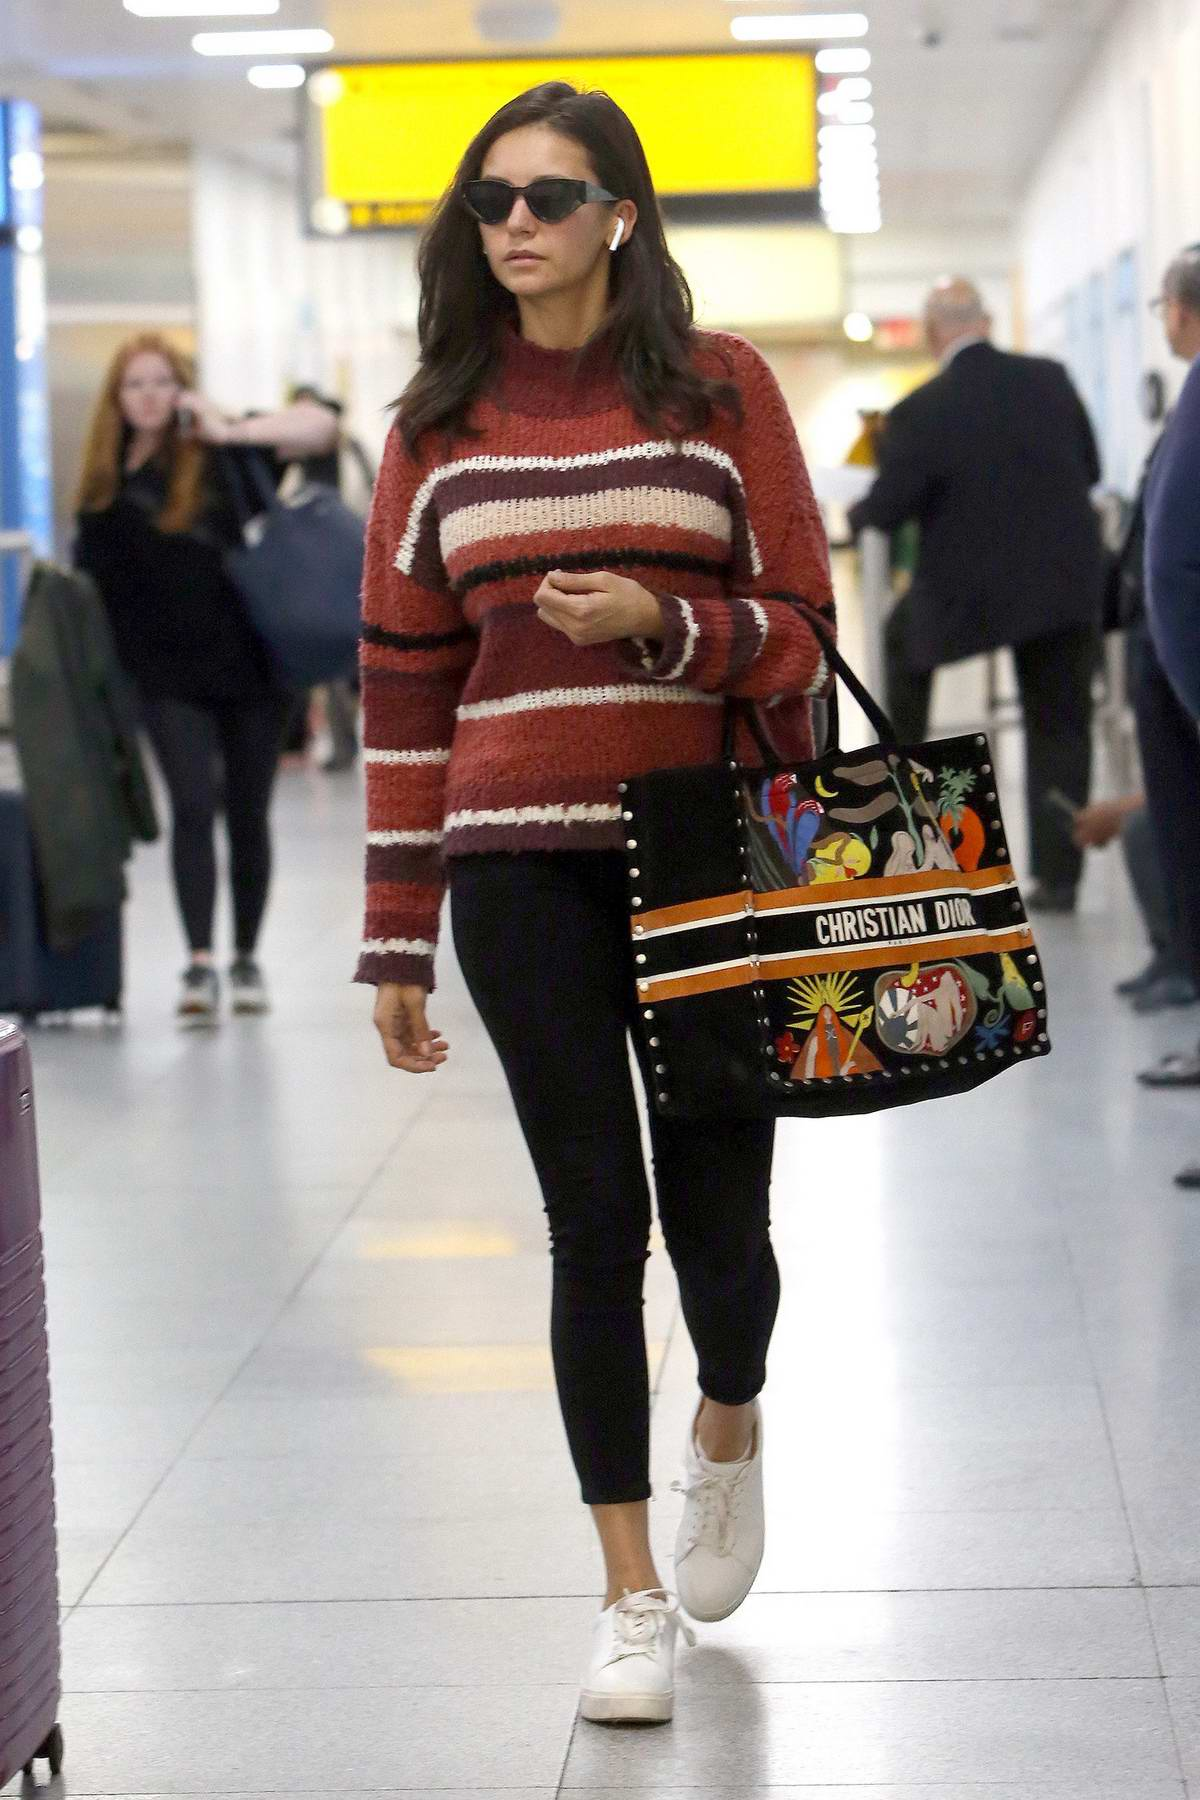 Nina Dobrev spotted in a striped sweater and black leggings as she touches down at JFK Airport in New York City